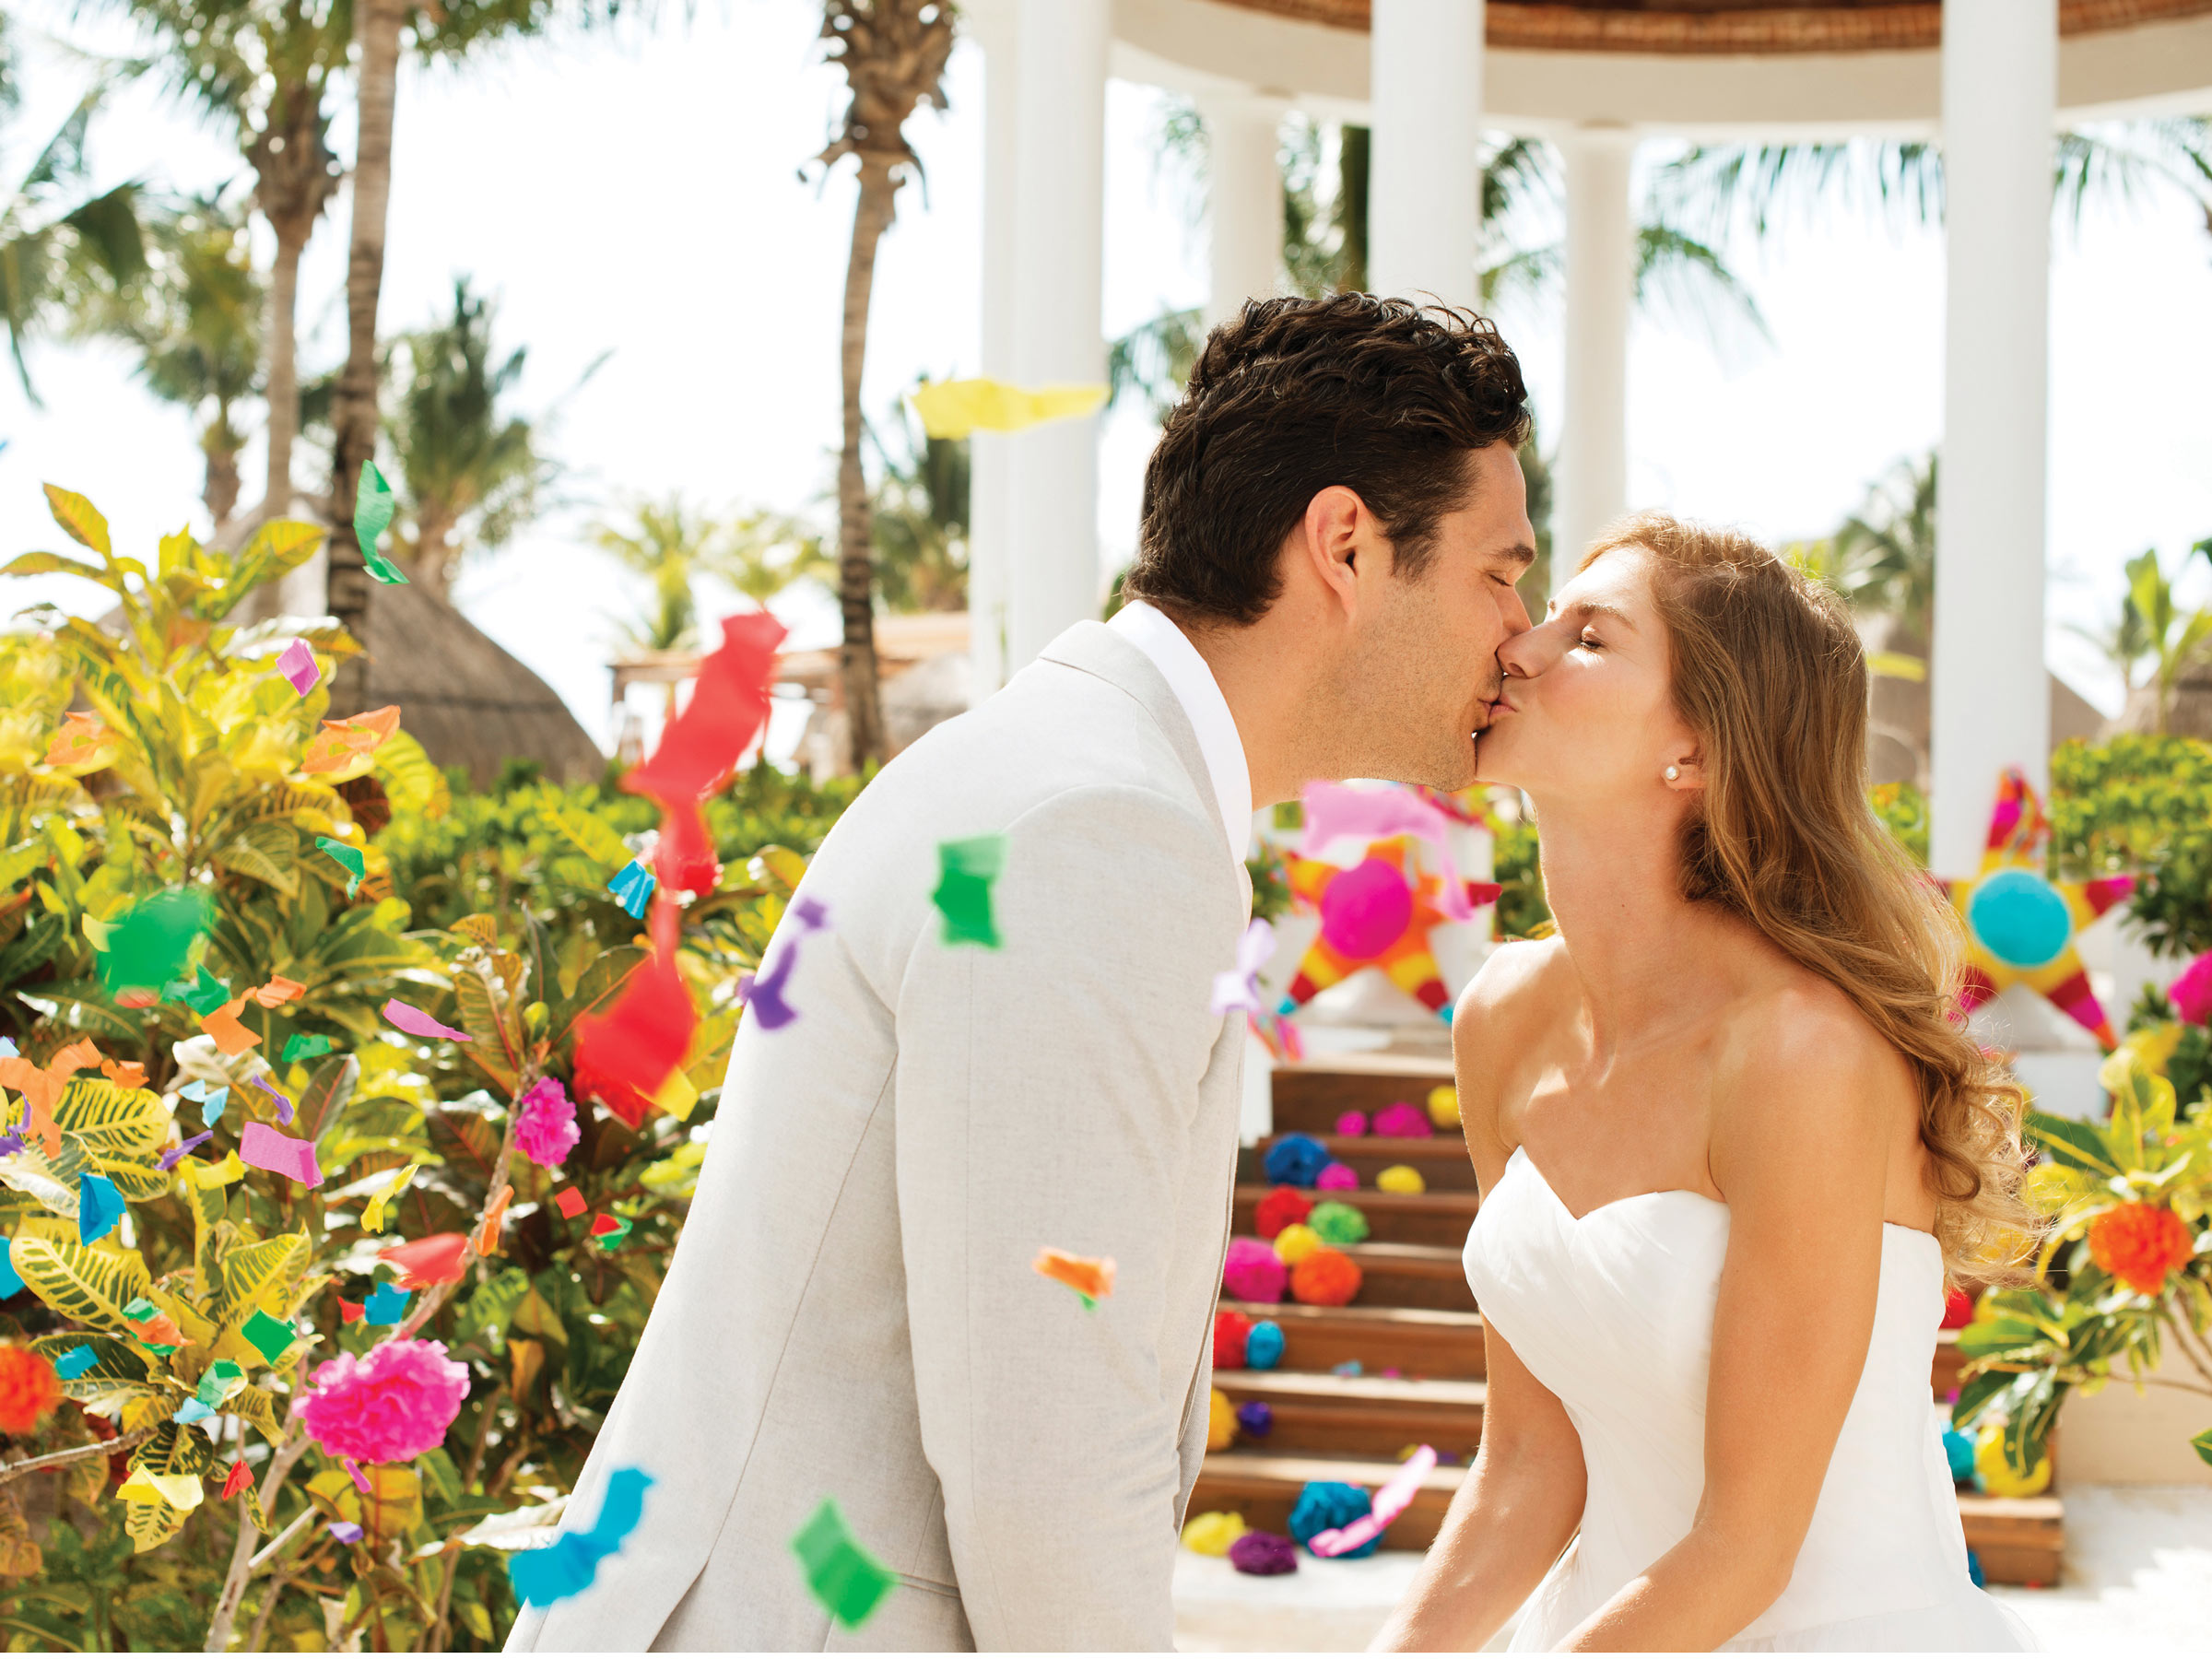 Mexican Wedding at a Riviera Maya Resort for Adults Only